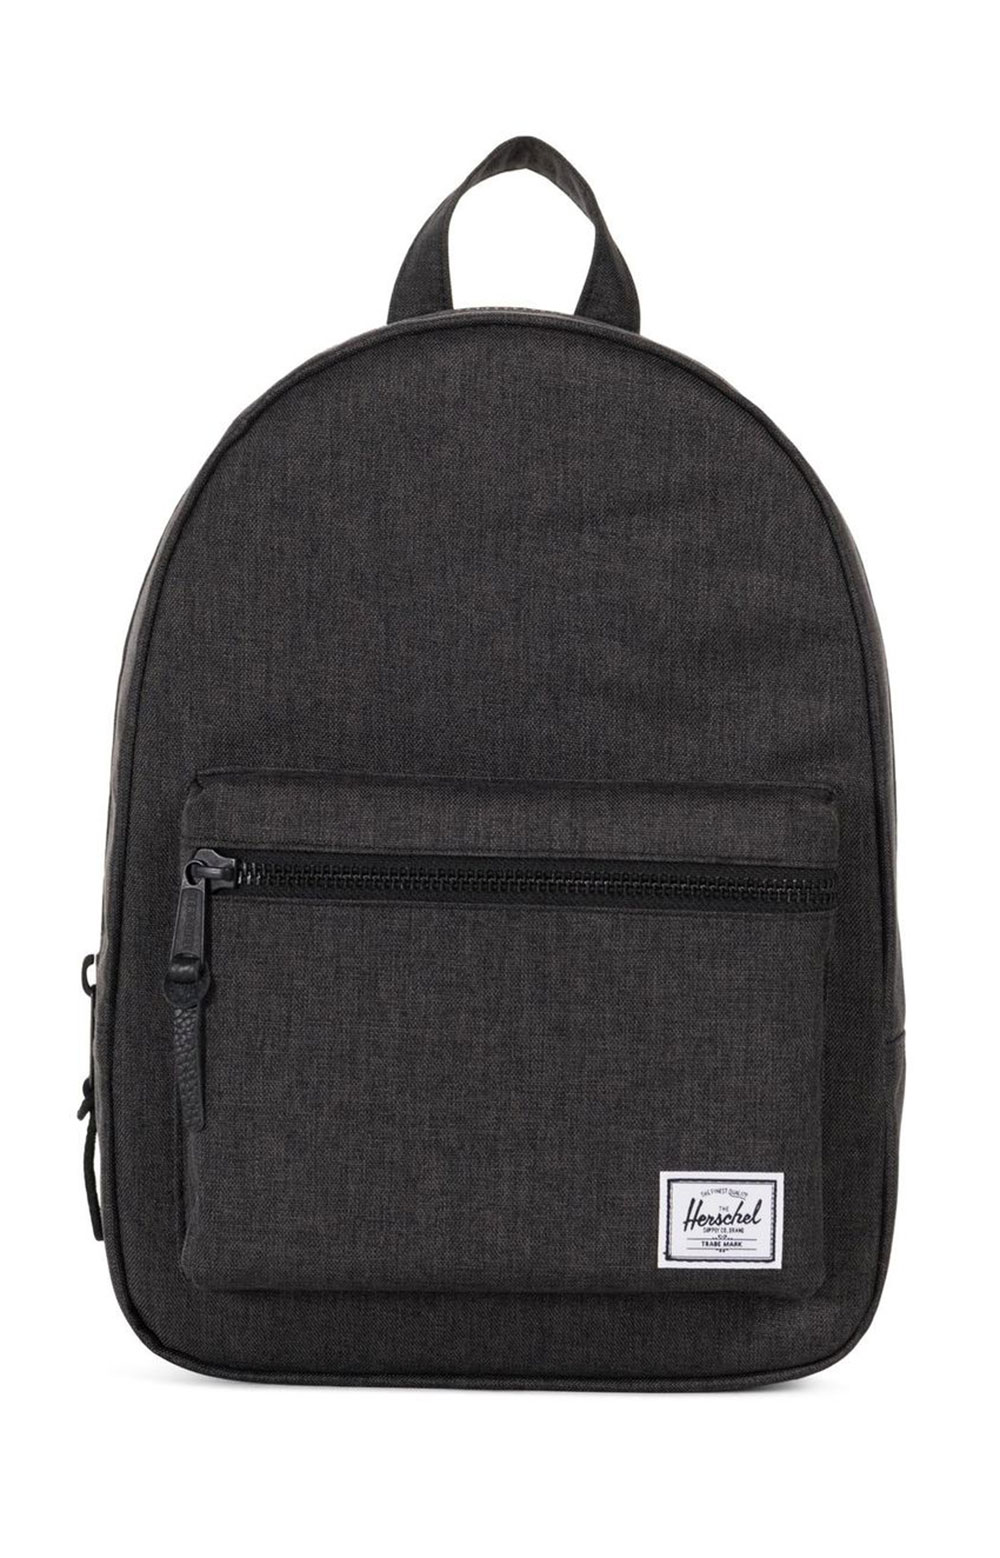 Grove S Backpack - Black Crosshatch